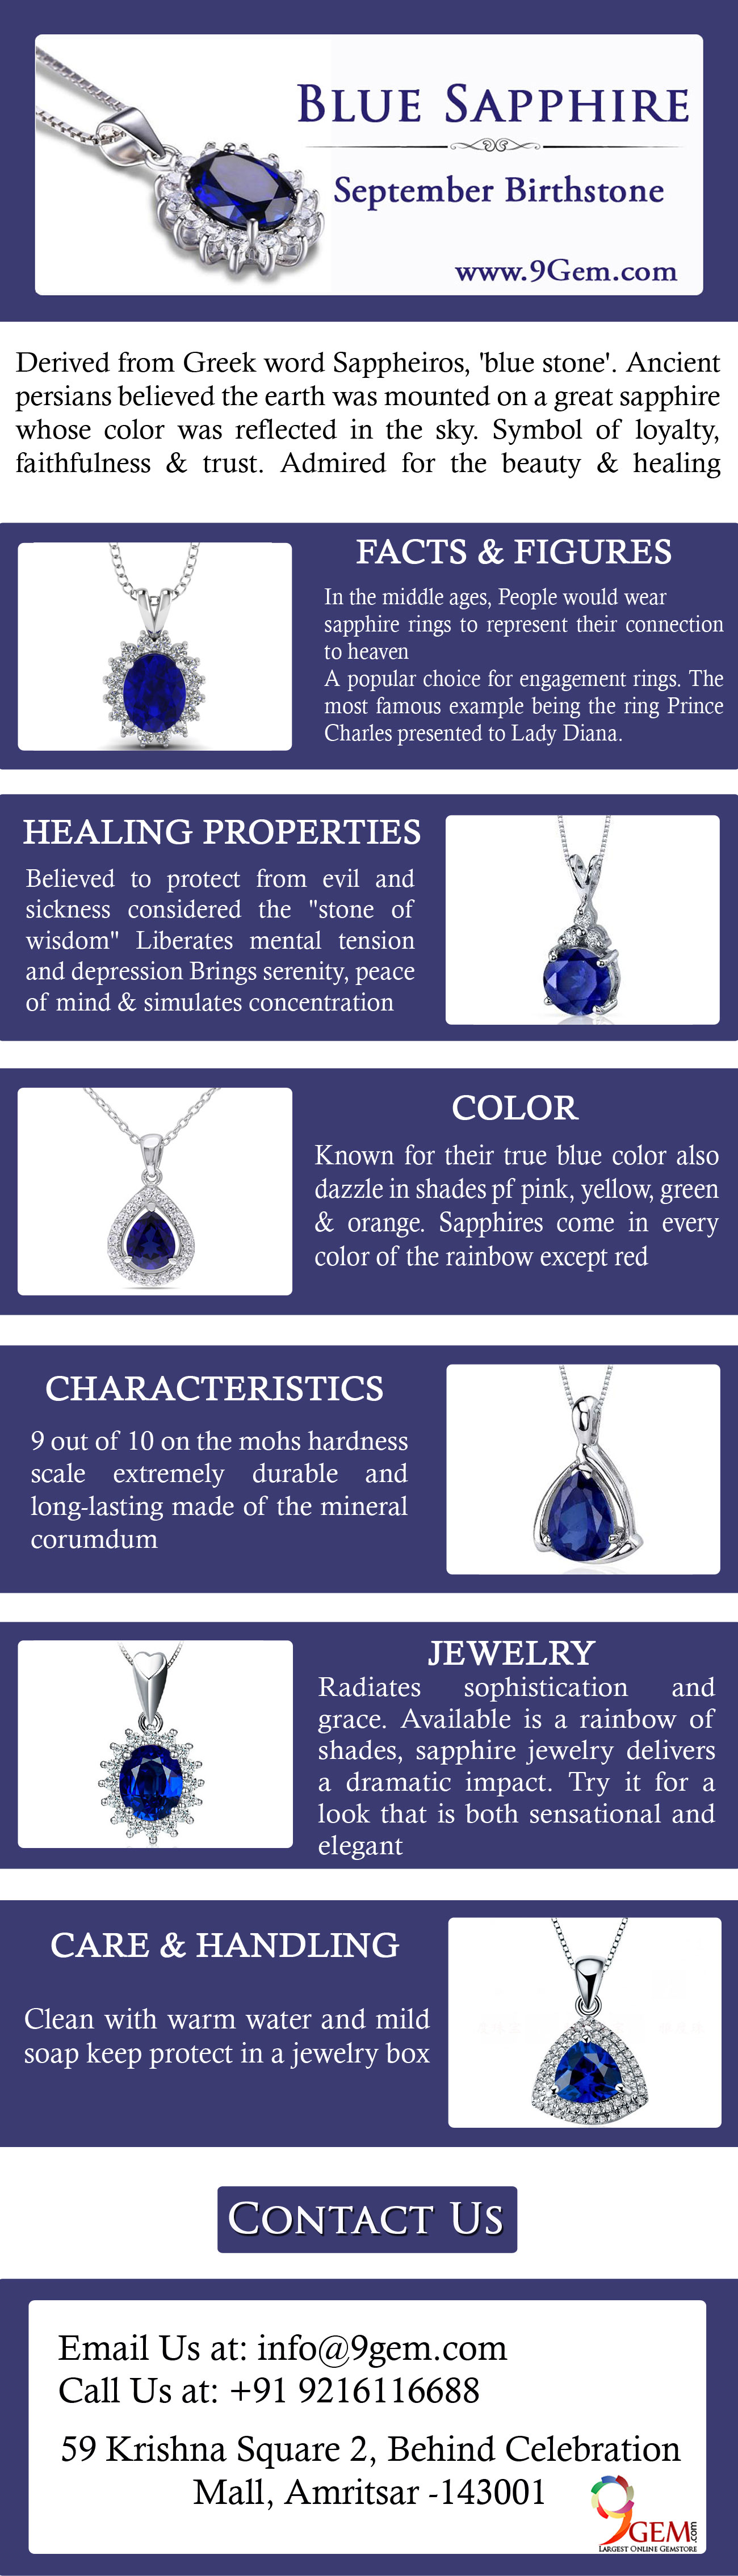 gems cursed gemstones diamonds gallery sinister sapphire sparkle mysterious